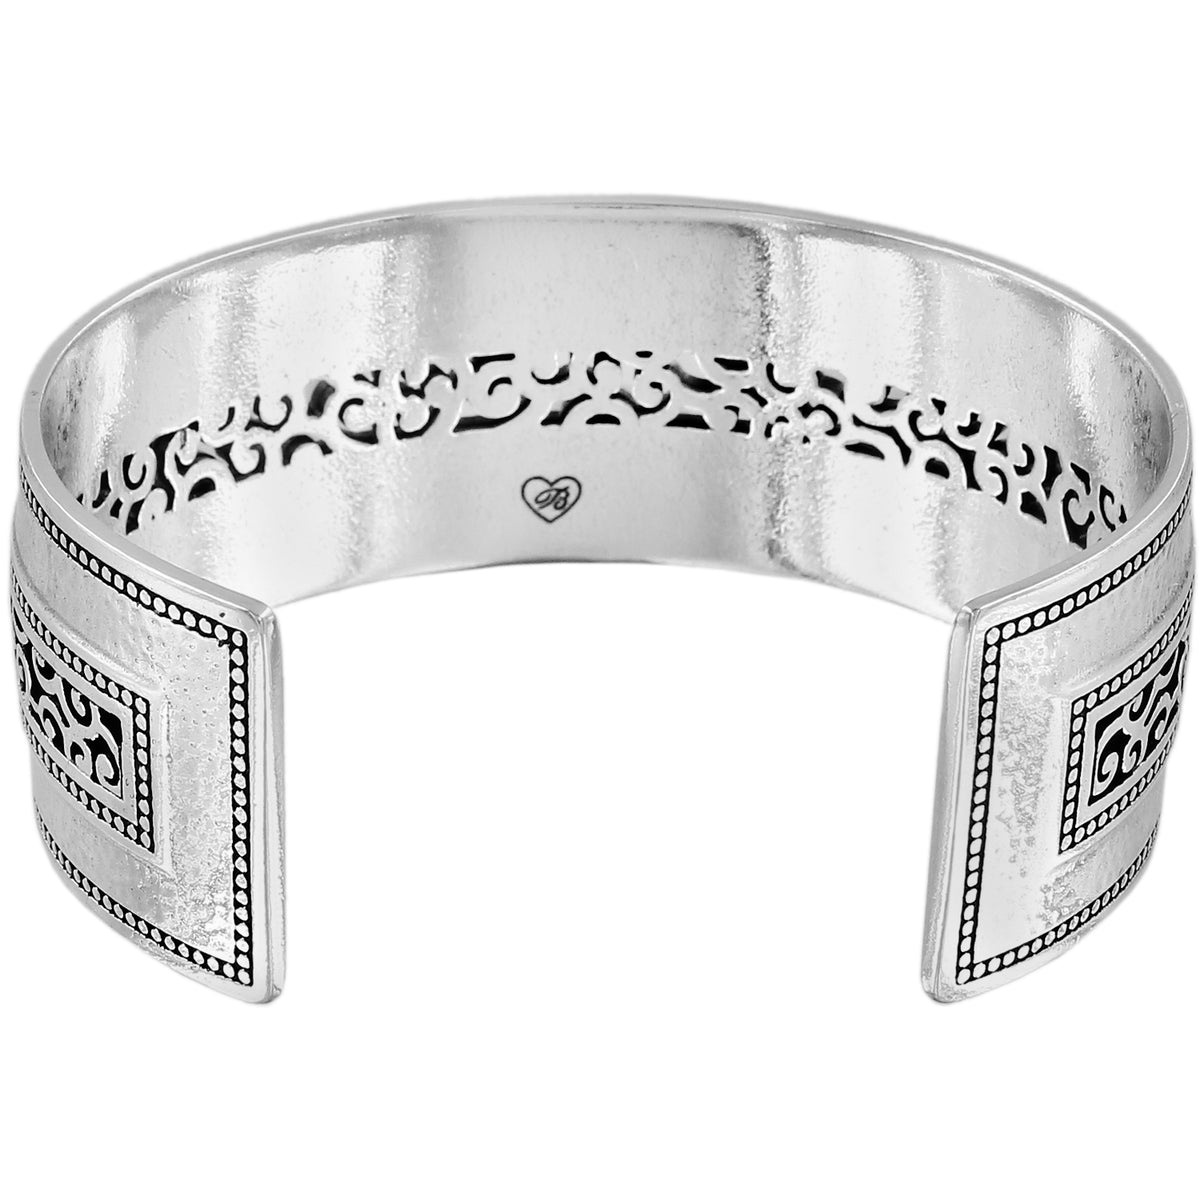 Brighton Mingle Cuff Bracelet